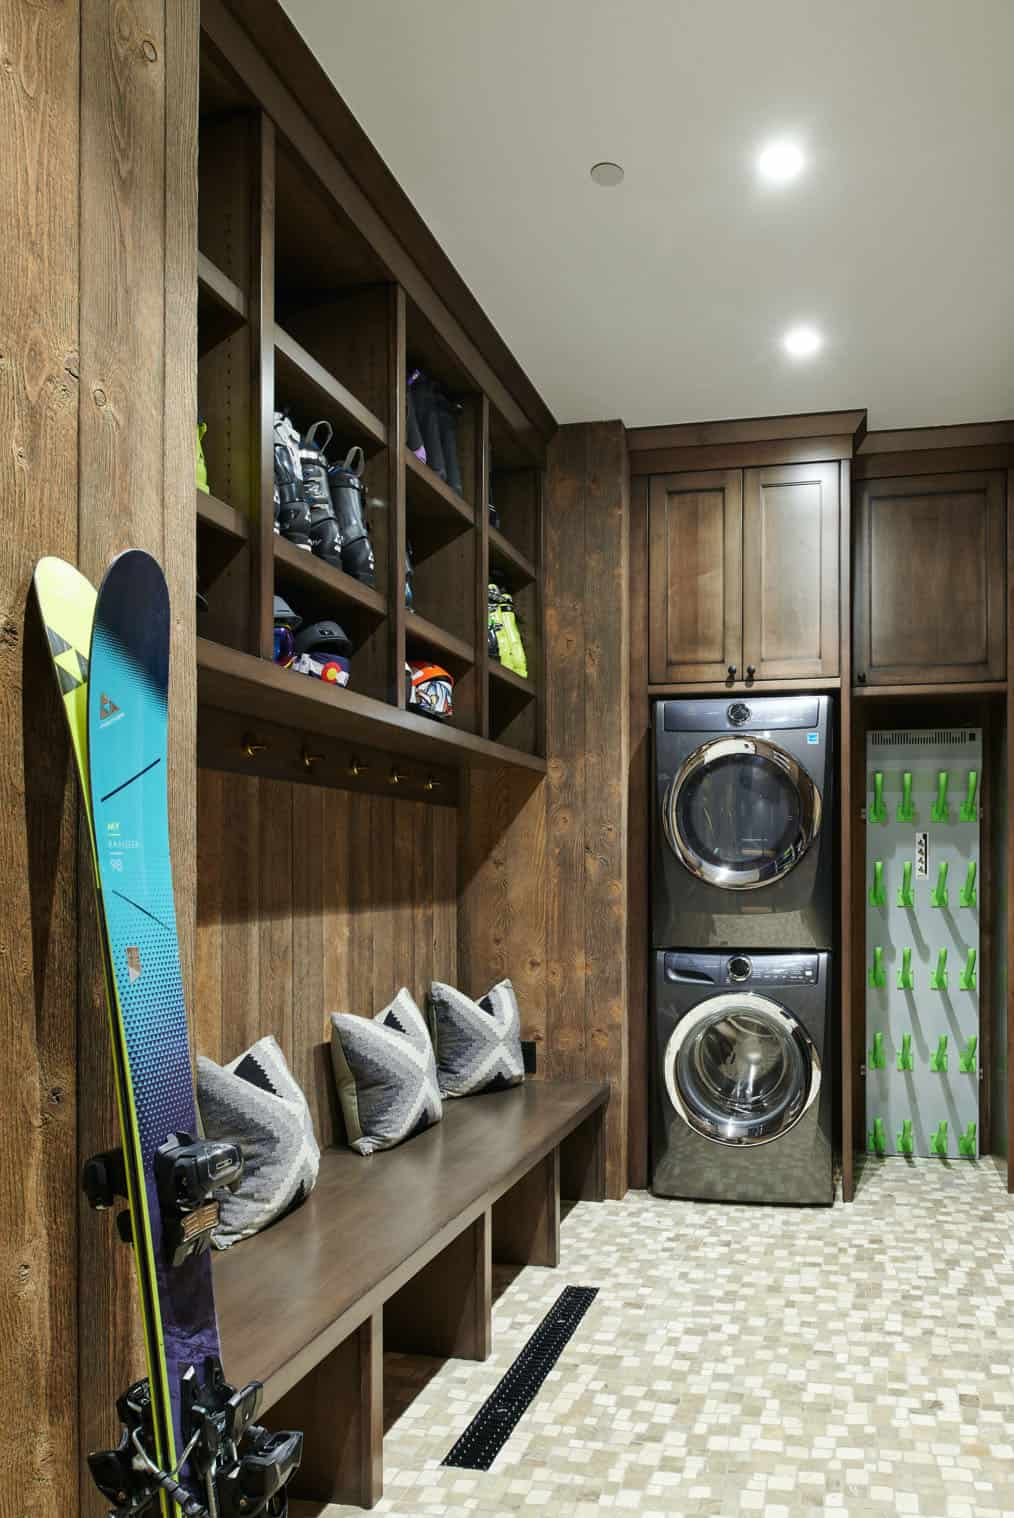 Even the entrance area is very spacious, with plenty of storage for ski equipment and more